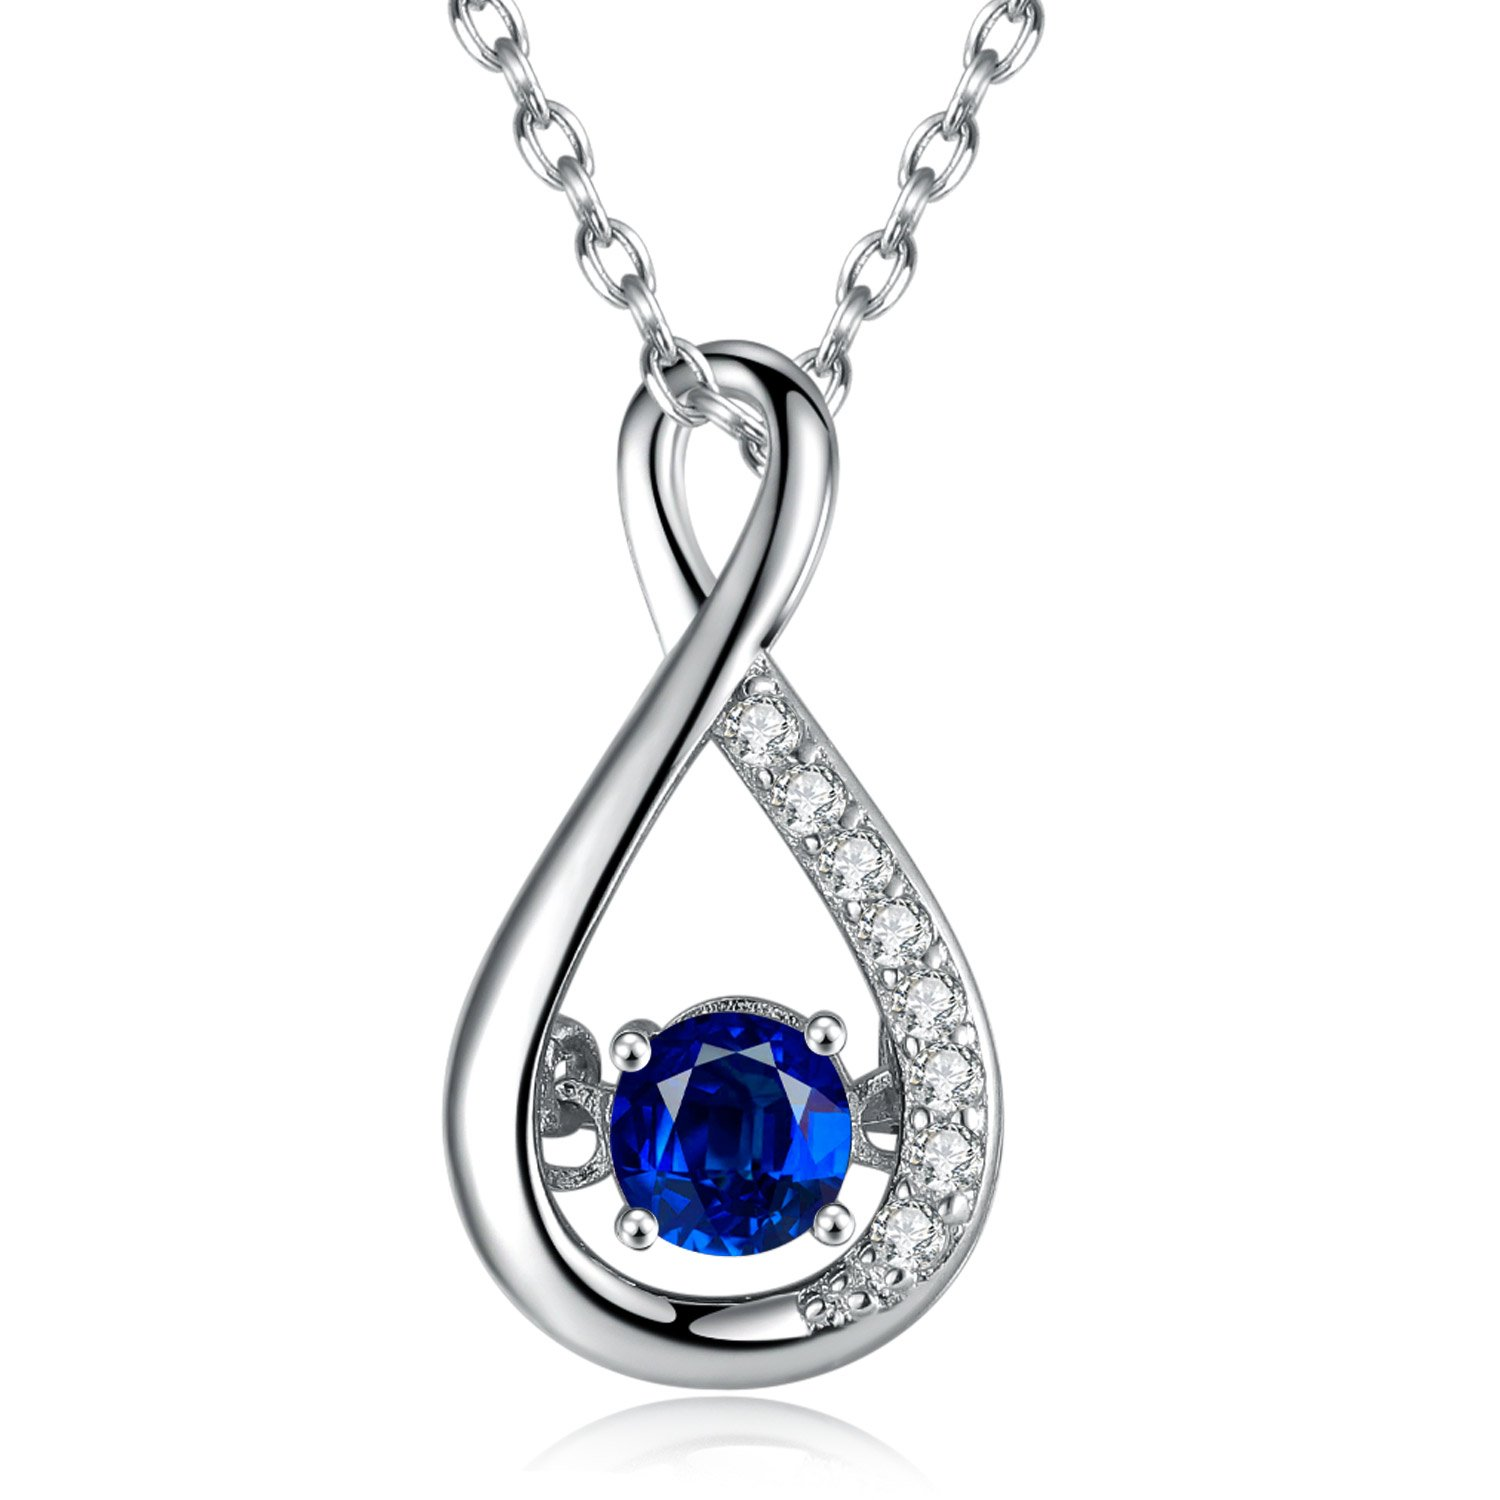 Amazon caperci sterling silver gemstone created blue sapphire amazon caperci sterling silver gemstone created blue sapphire jewelry infinity pendant necklace for women 18 jewelry aloadofball Gallery